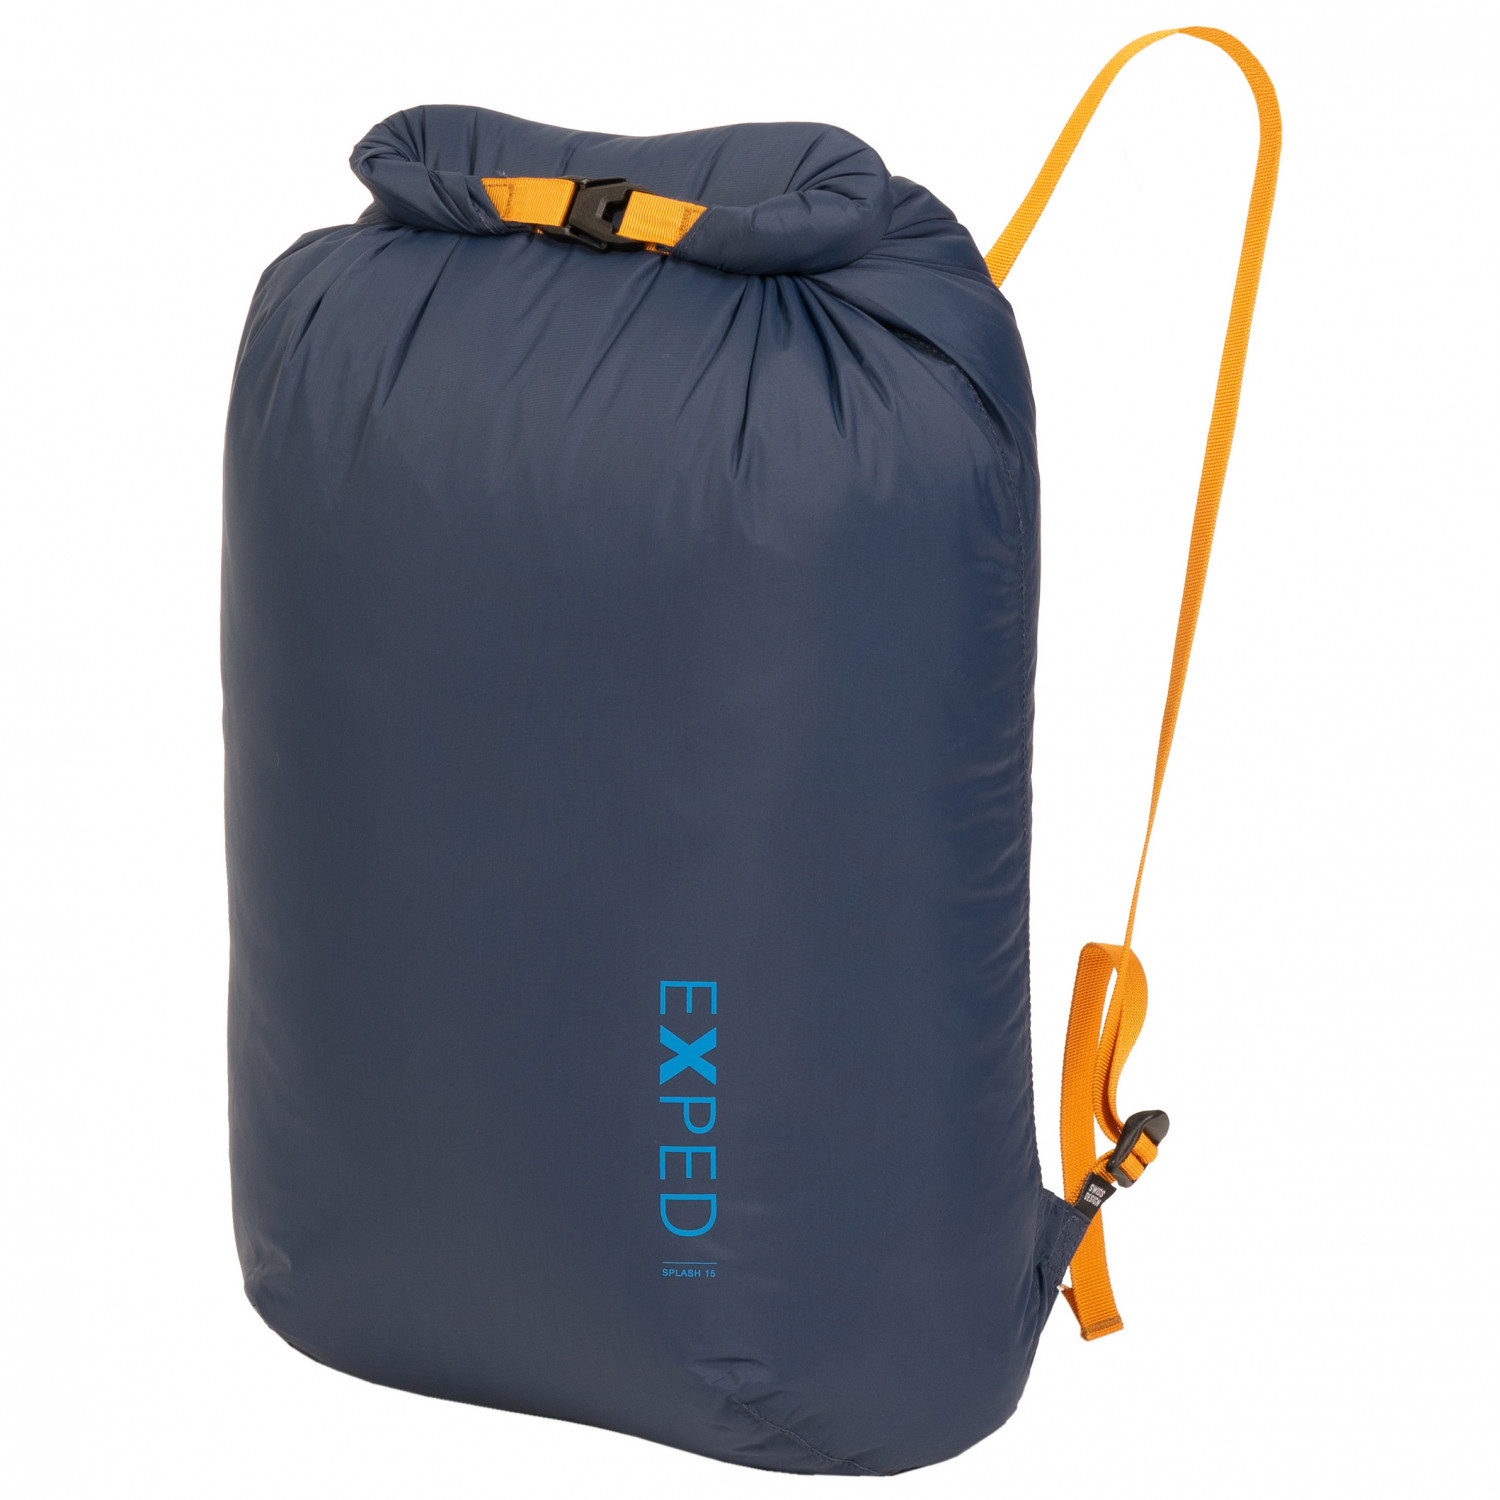 Exped Splash 15 Stuff Sack Buy Online Bergfreunde Eu